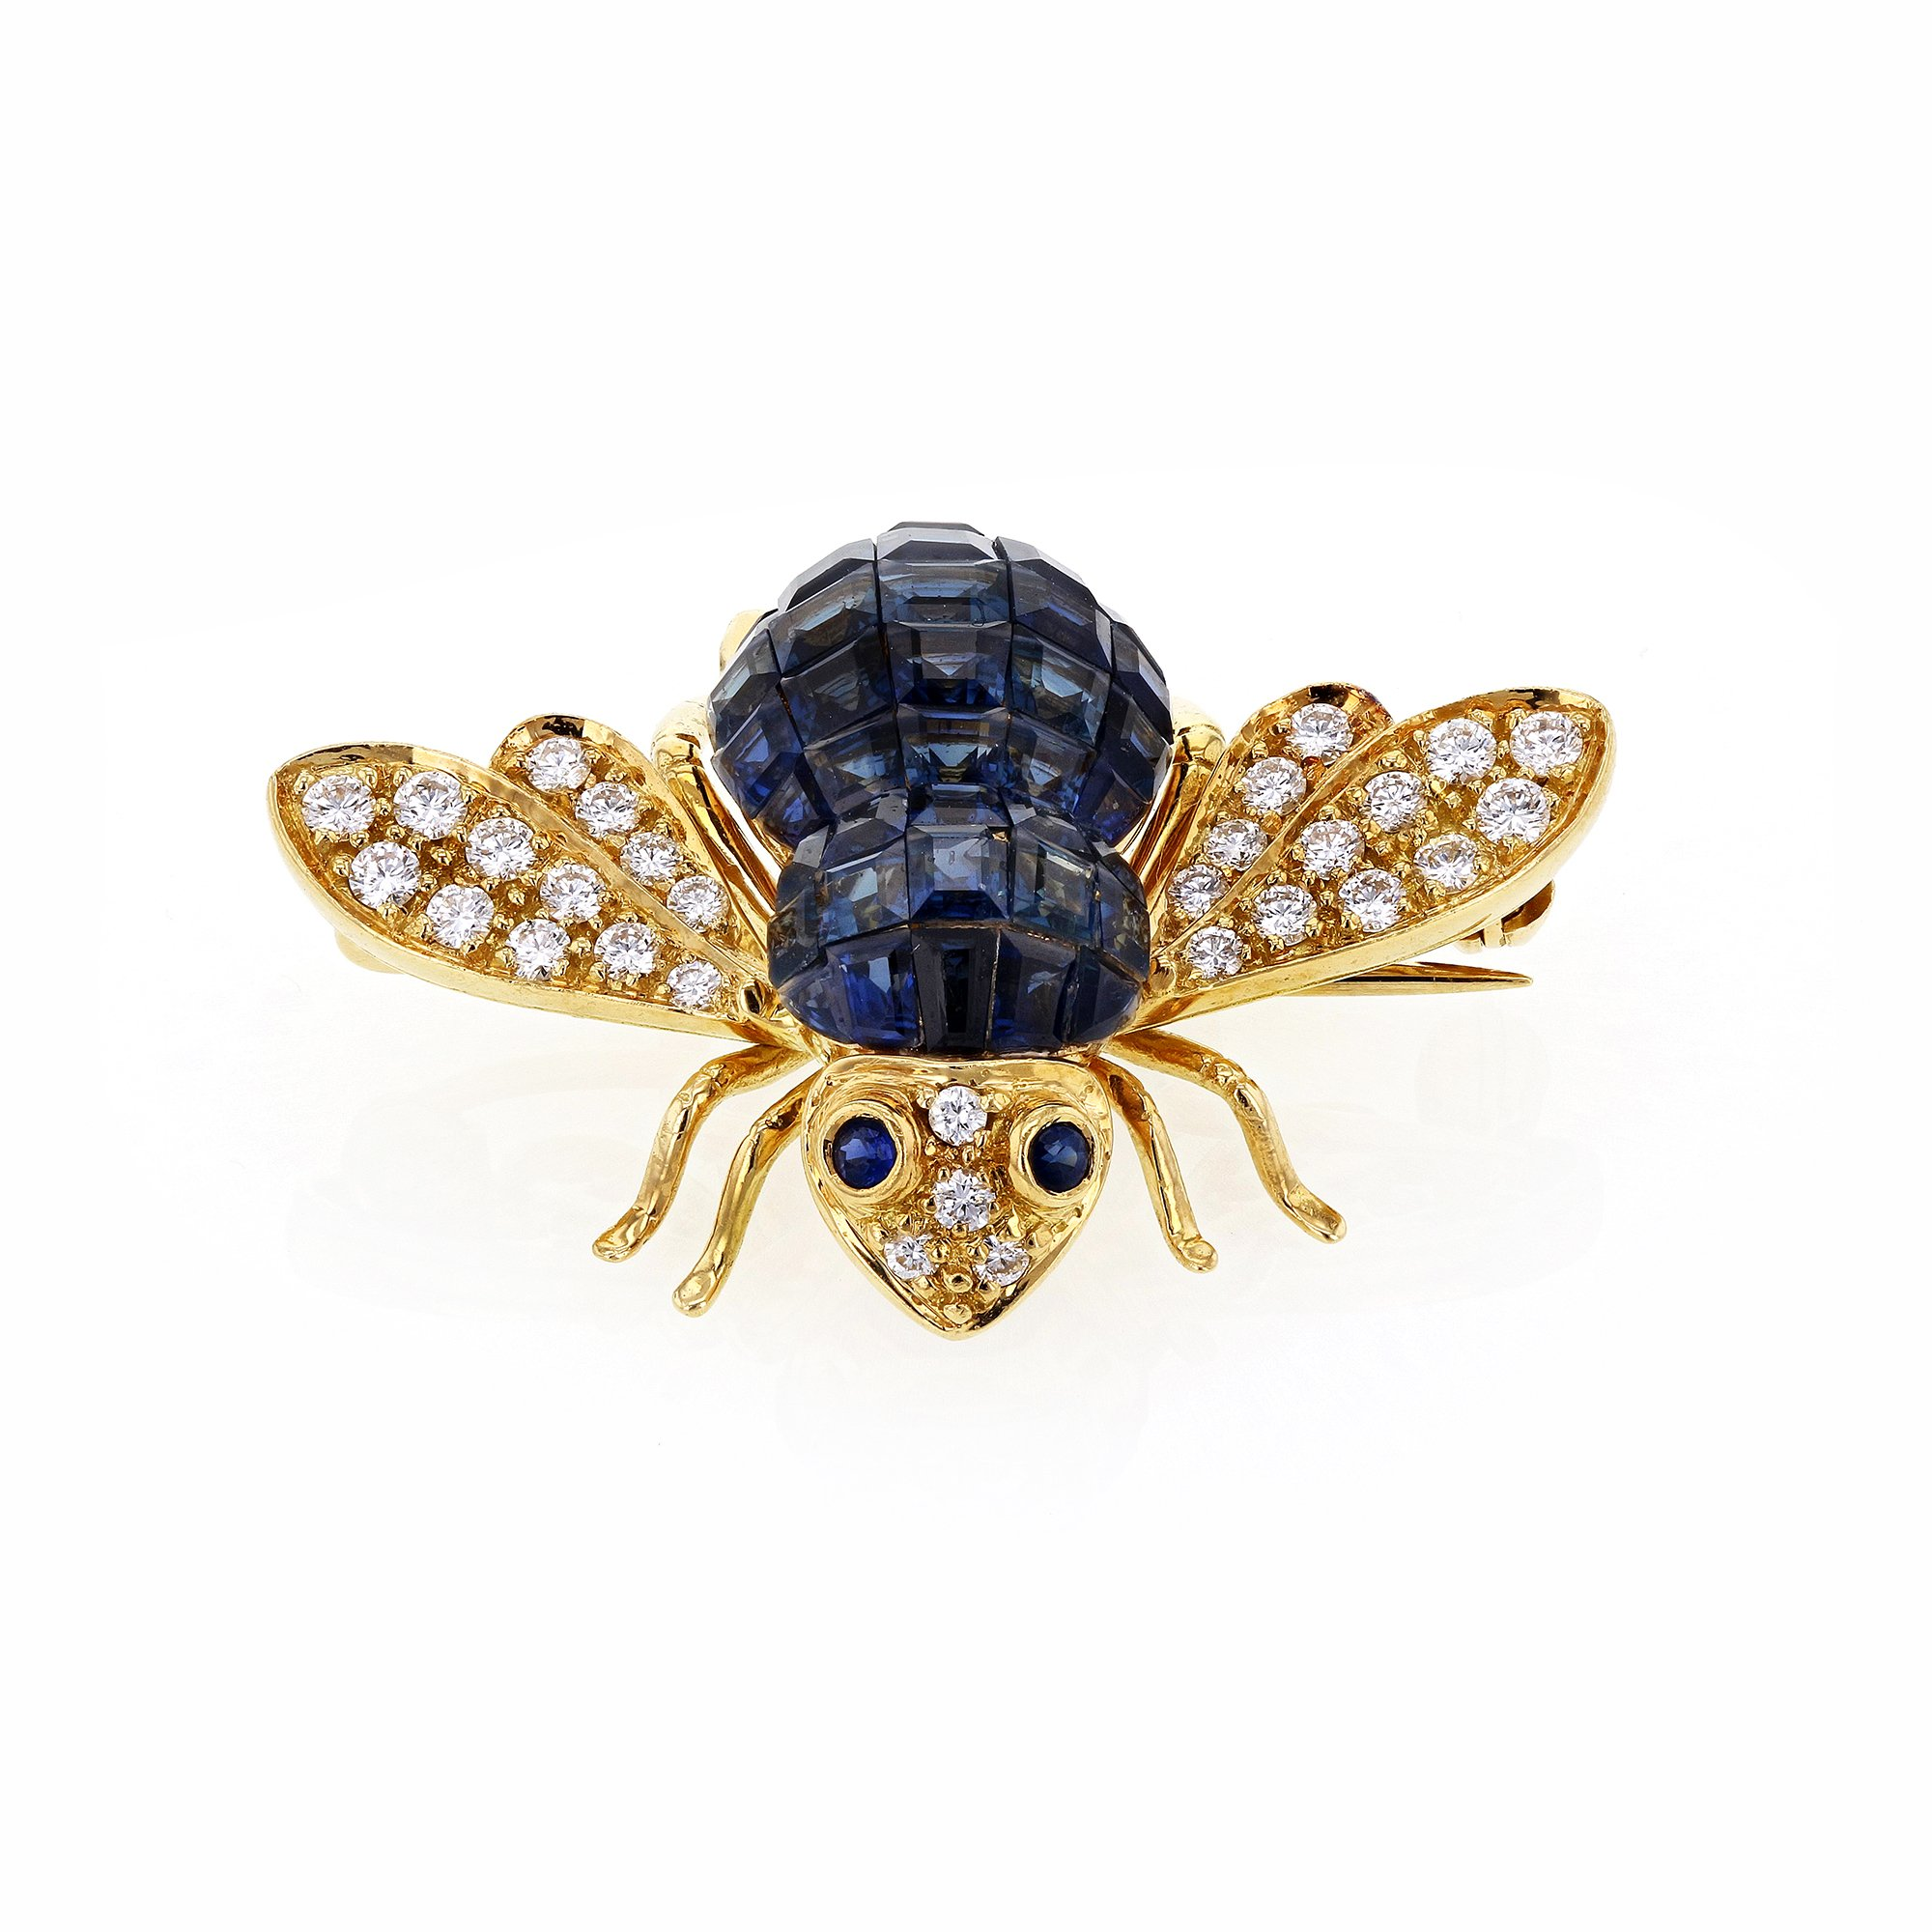 Sabbadini Gioielli Blue Sapphire and Diamond Bee Brooch 5 Carats TGW 18k Yellow Gold - Italian Fine Jewelry